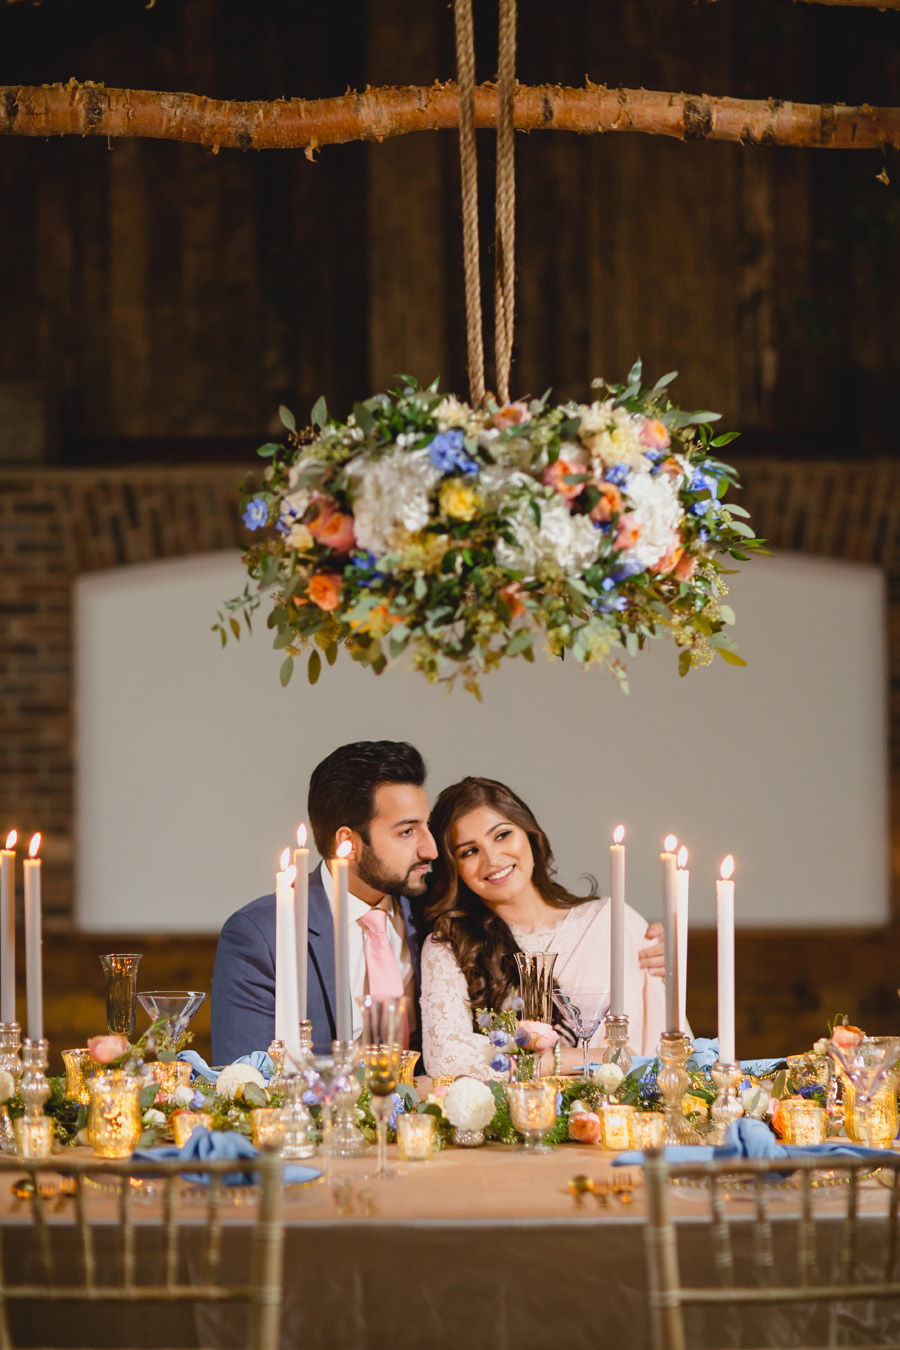 Cheshire wedding photographer Zehra Jagani and styling by The Wedding Fairy (21)